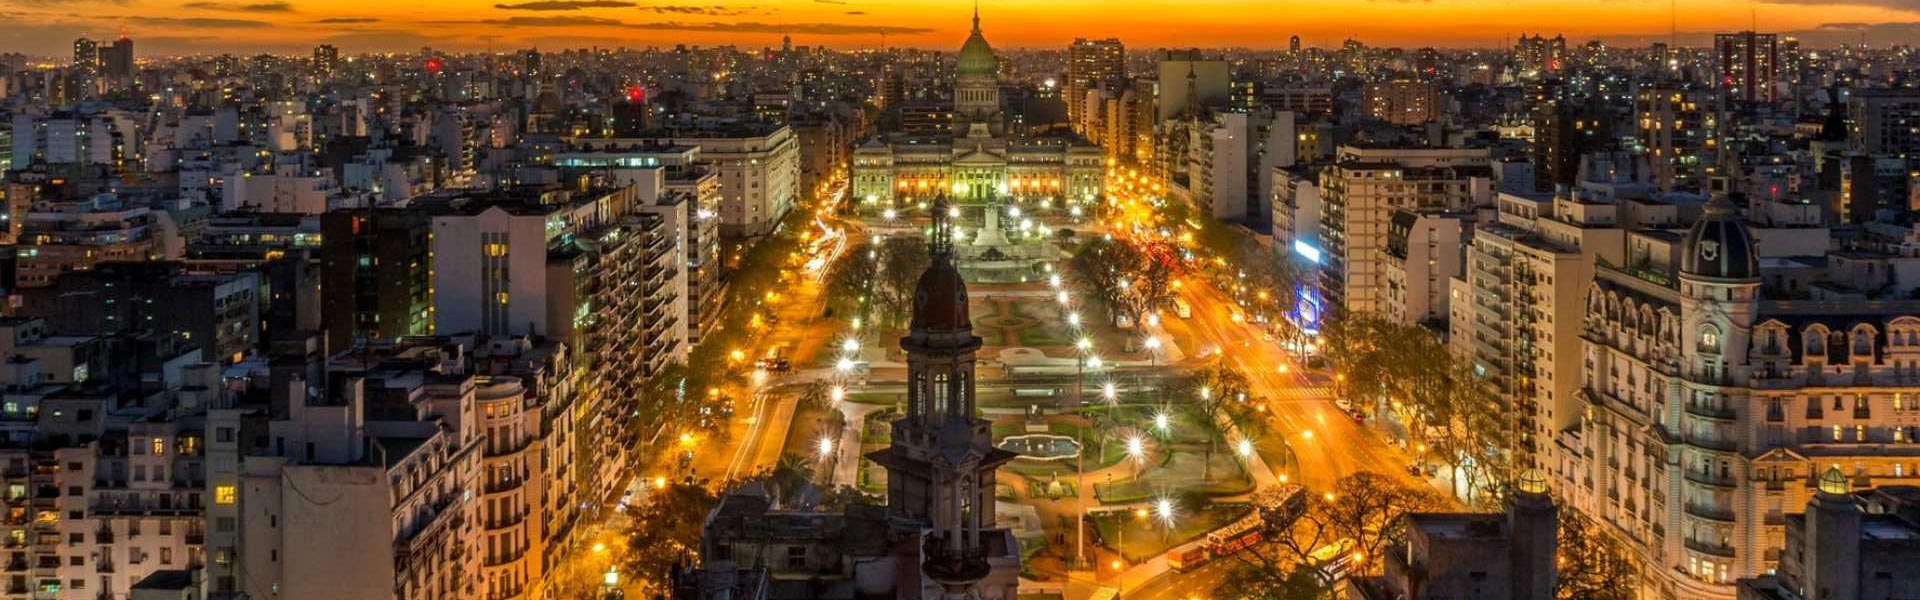 nocturna-buenos-aires-2-th